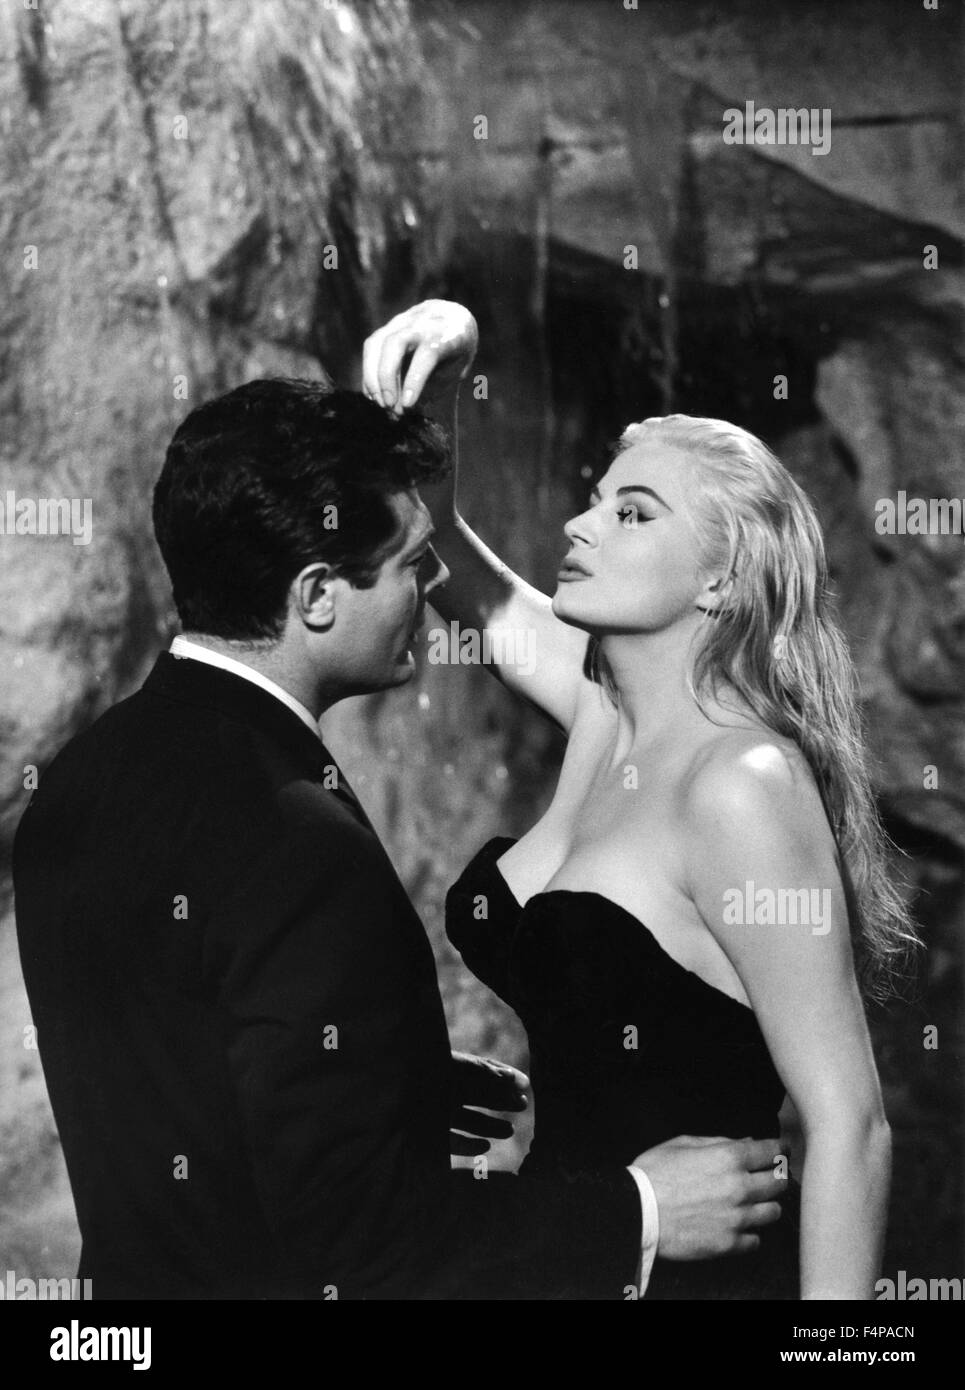 marcello mastroianni anita ekberg la dolce vita 1960 directed by stock photo 89001605 alamy. Black Bedroom Furniture Sets. Home Design Ideas